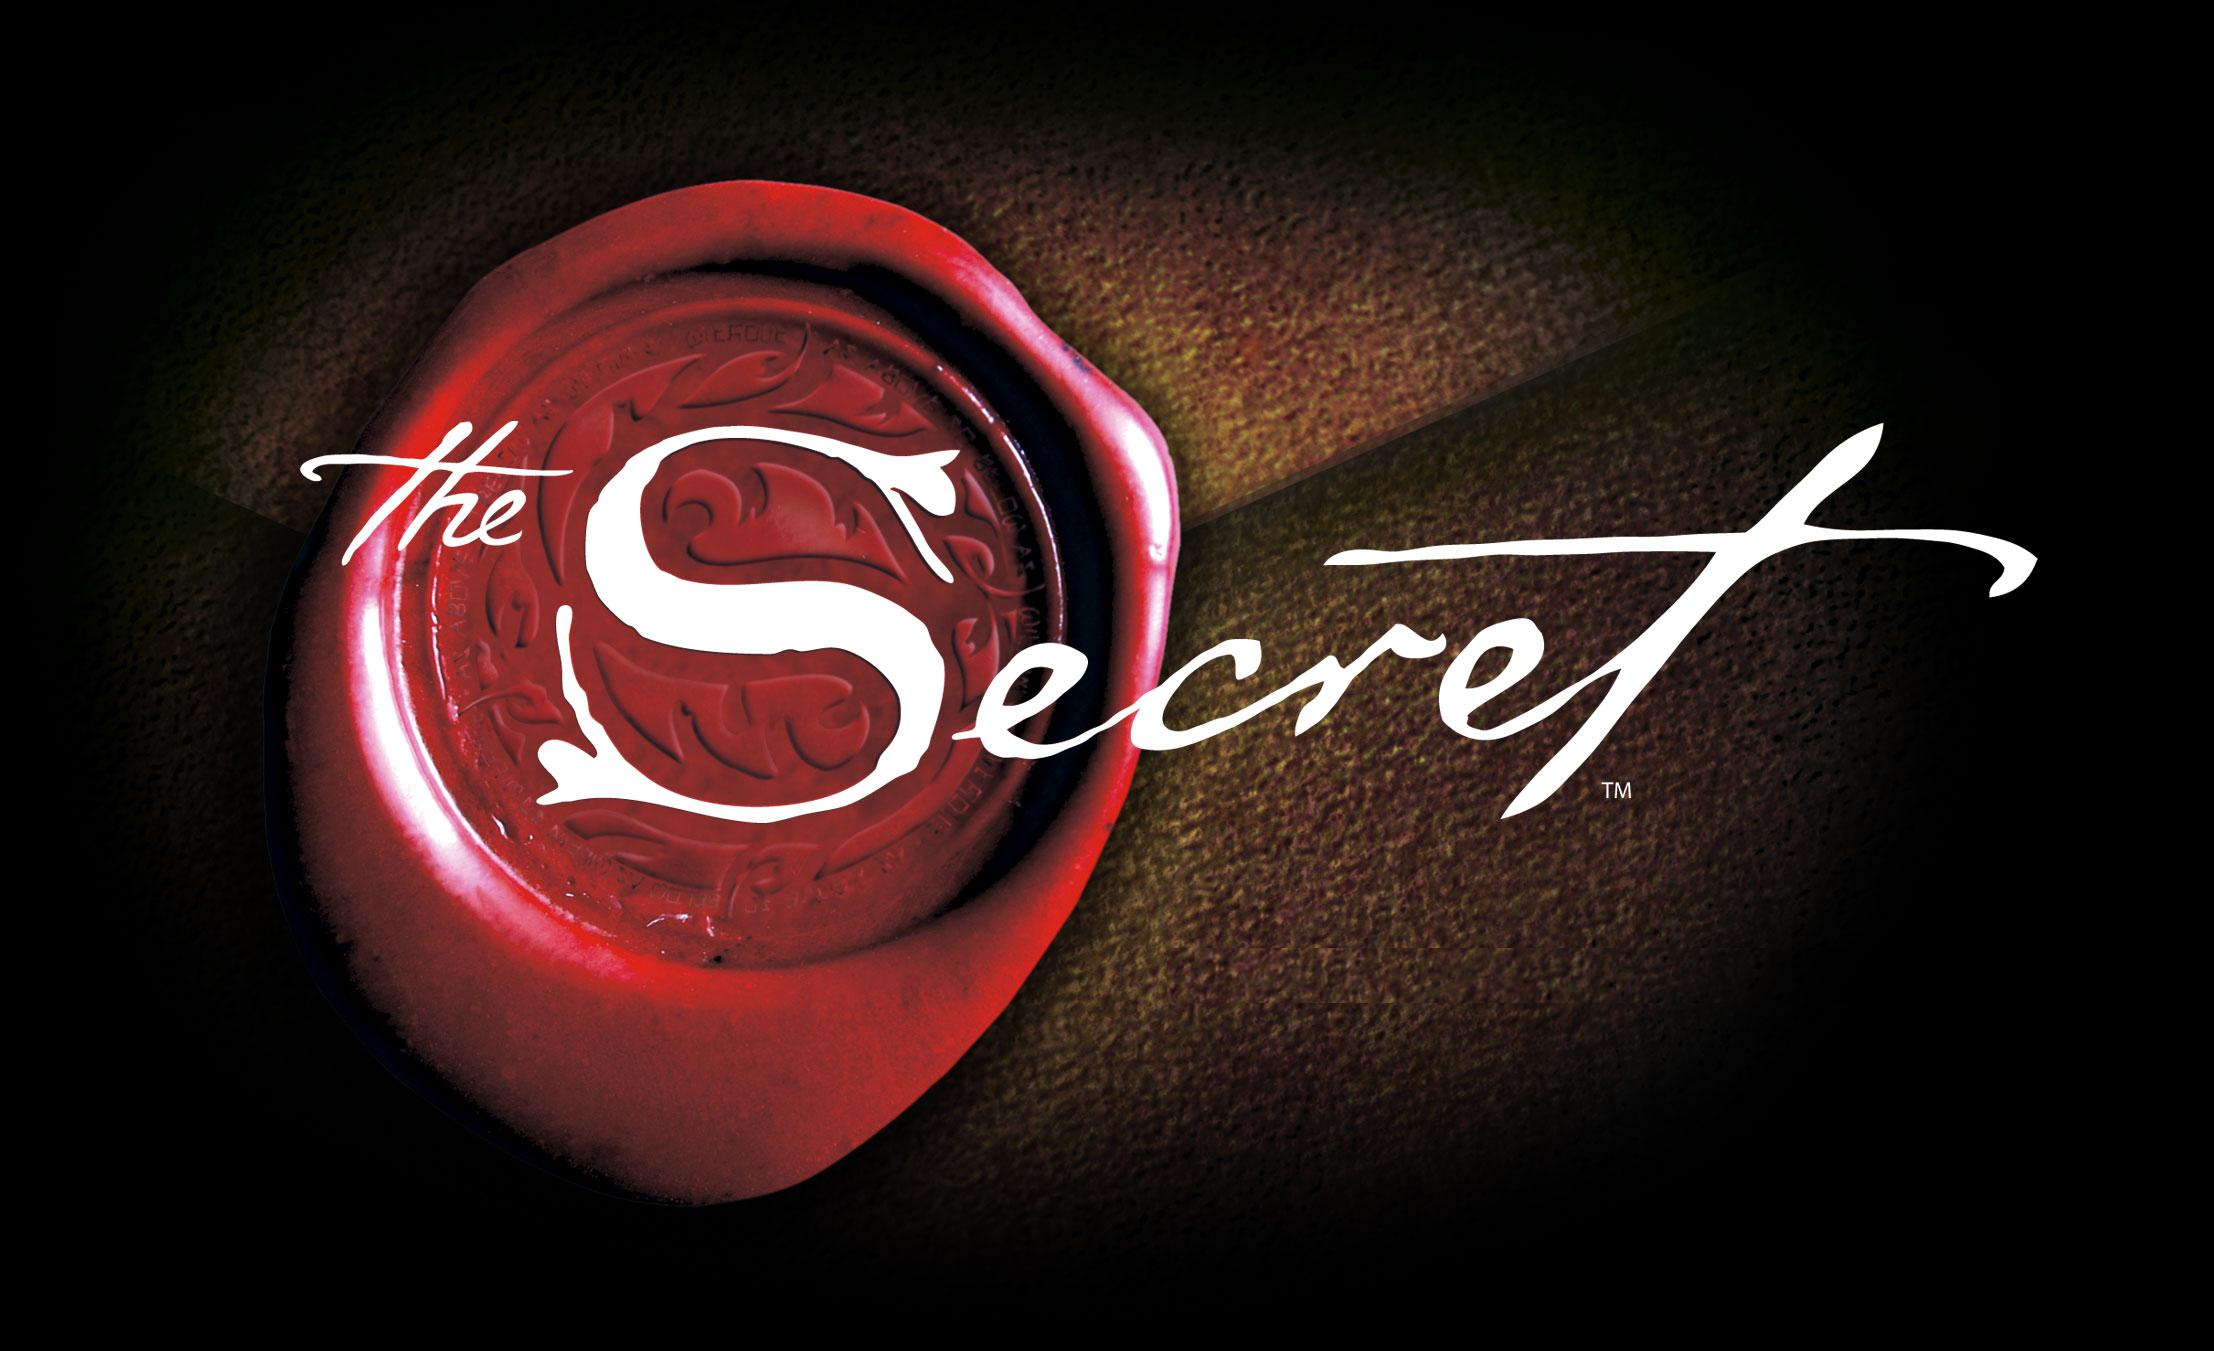 The secret (2006 film) – the law of attraction.